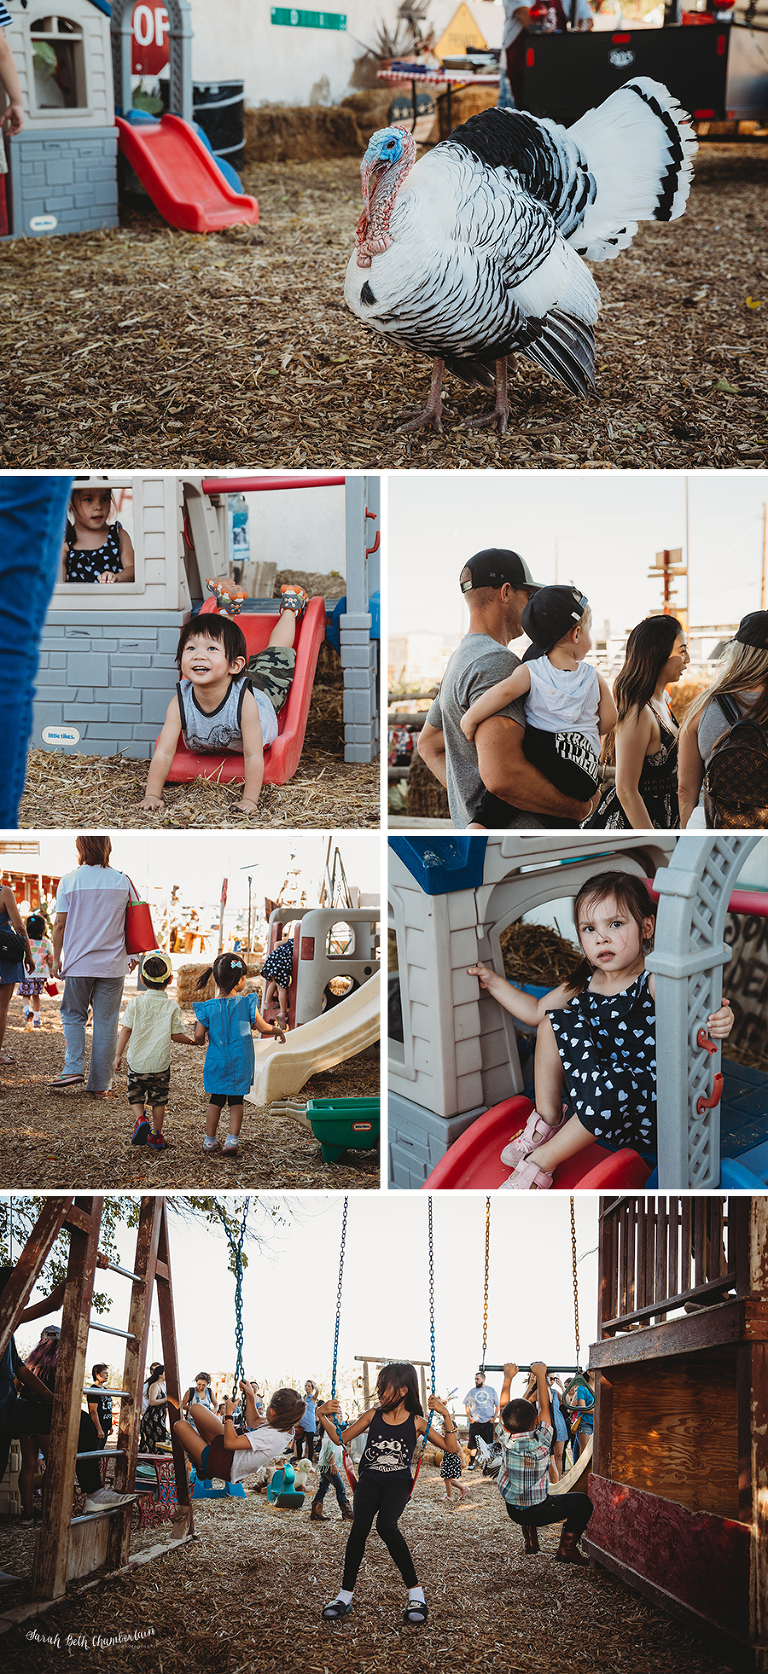 Dash's Birthday at McKee Ranch | Event Photography | Las Vegas Family Photographer | Birthday Party | Family Farm | Pumpkin Patch | Farm Animals | Pony Ride